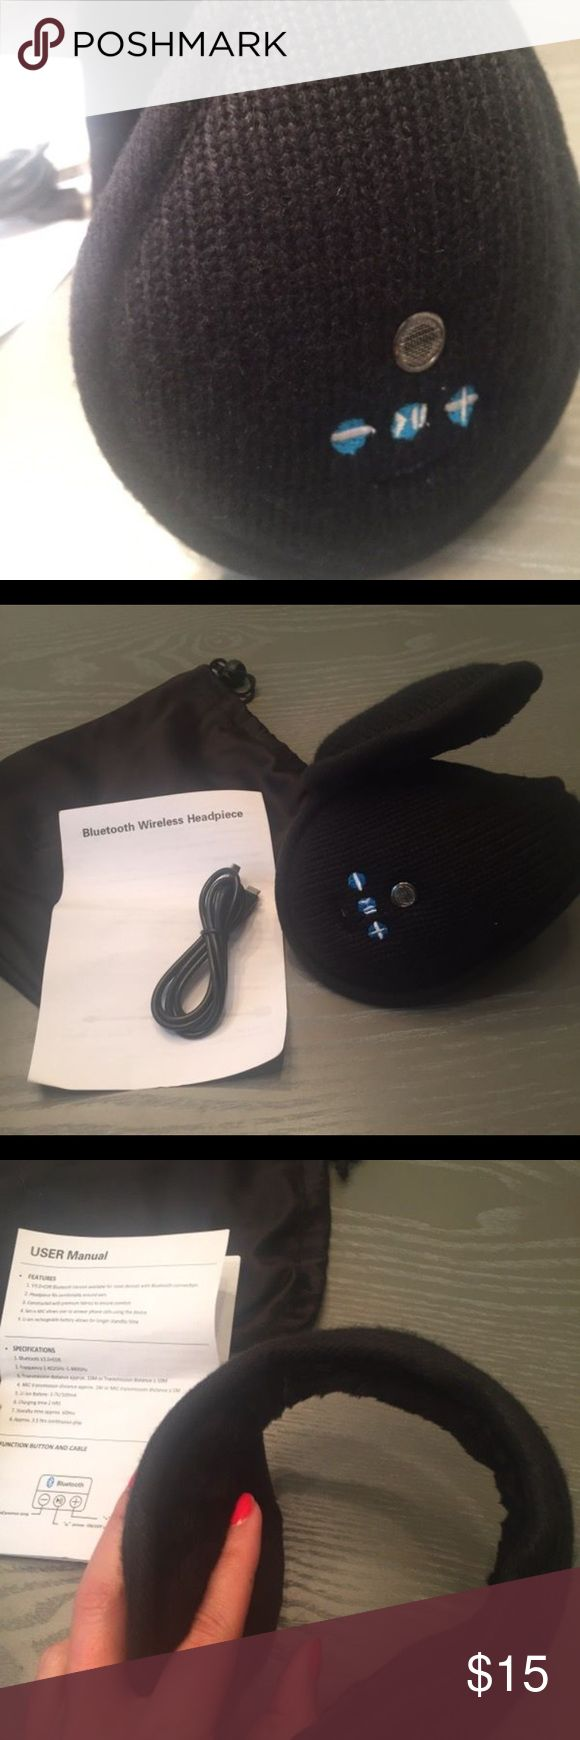 Bluetooth Headphone Earmuffs New, never used. Pouch/instructions included. Accessories Hats